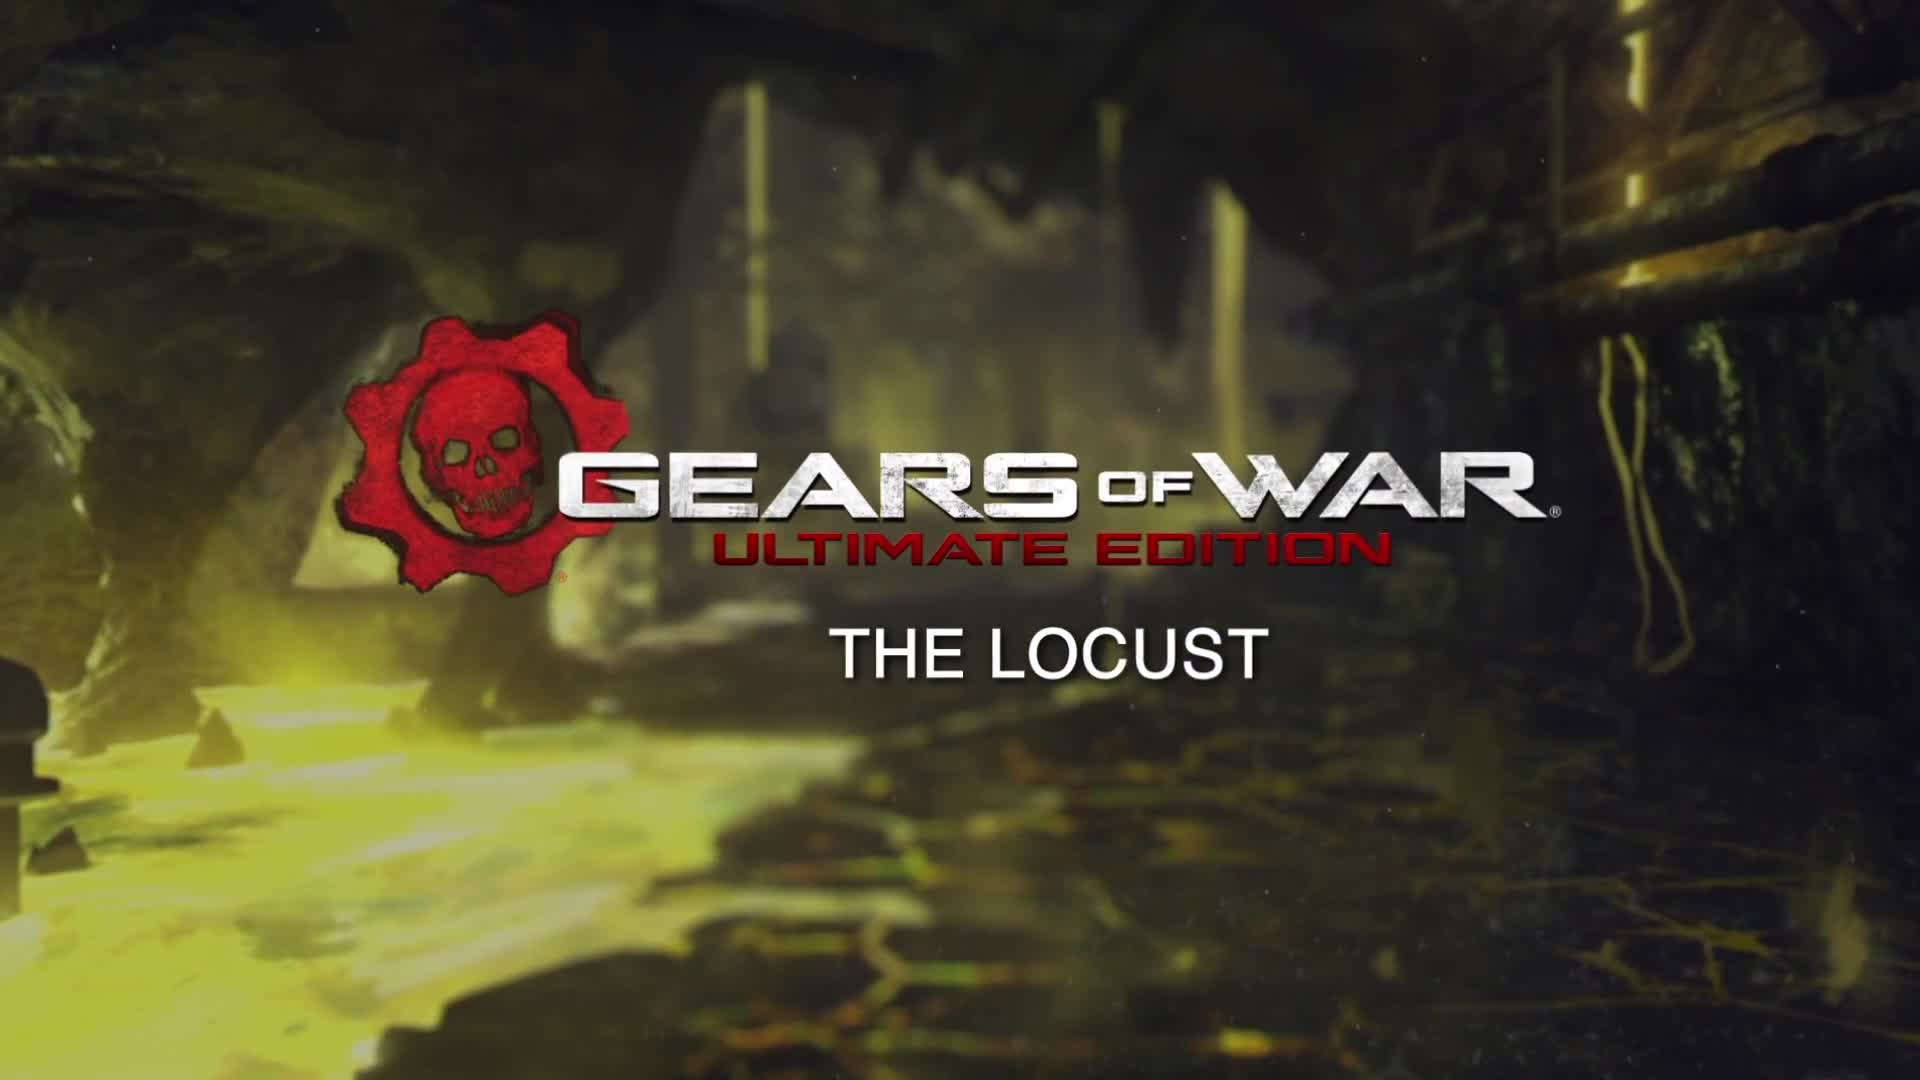 GEARS OF WAR Ultimate Edition - The Locust Trailer (Xbox One) | Official  Remastered Shooter Game HD